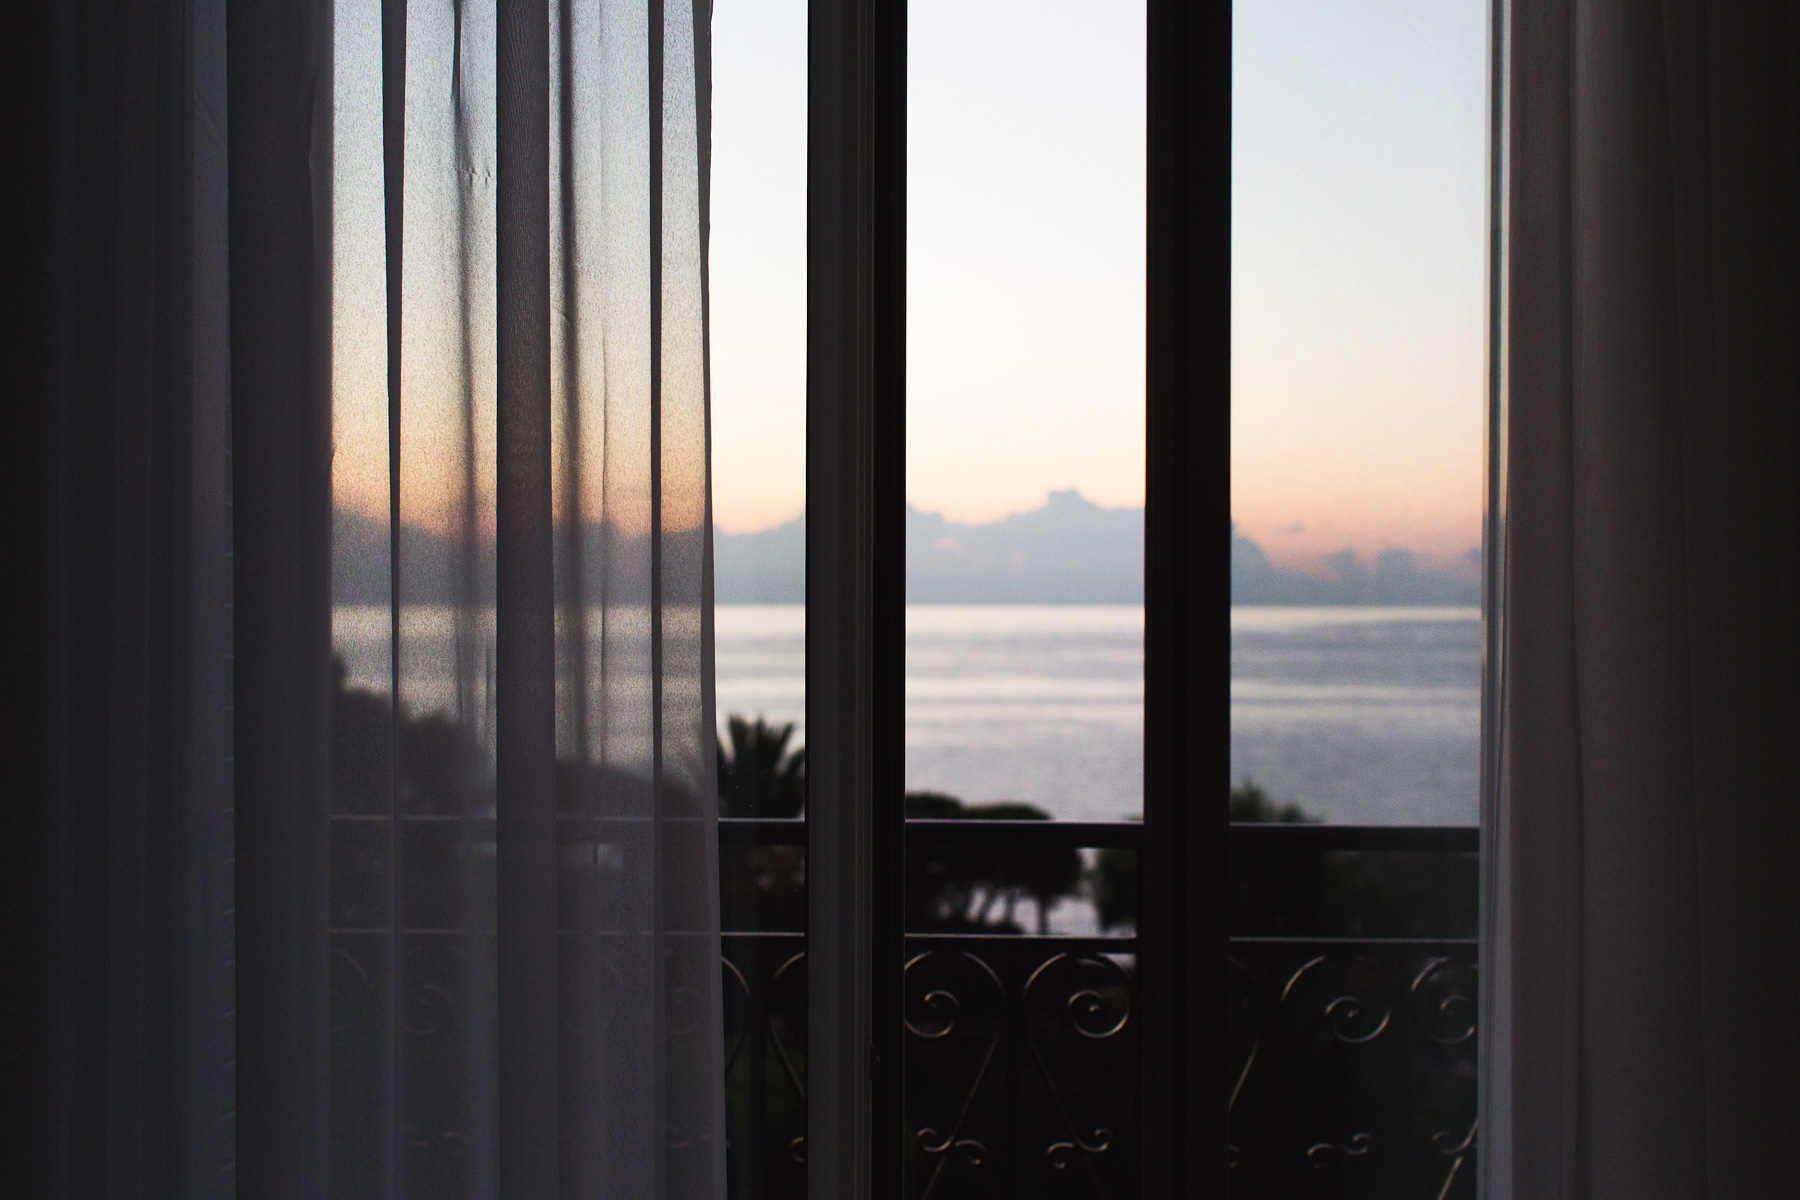 Sunrise in Cap-Ferrat